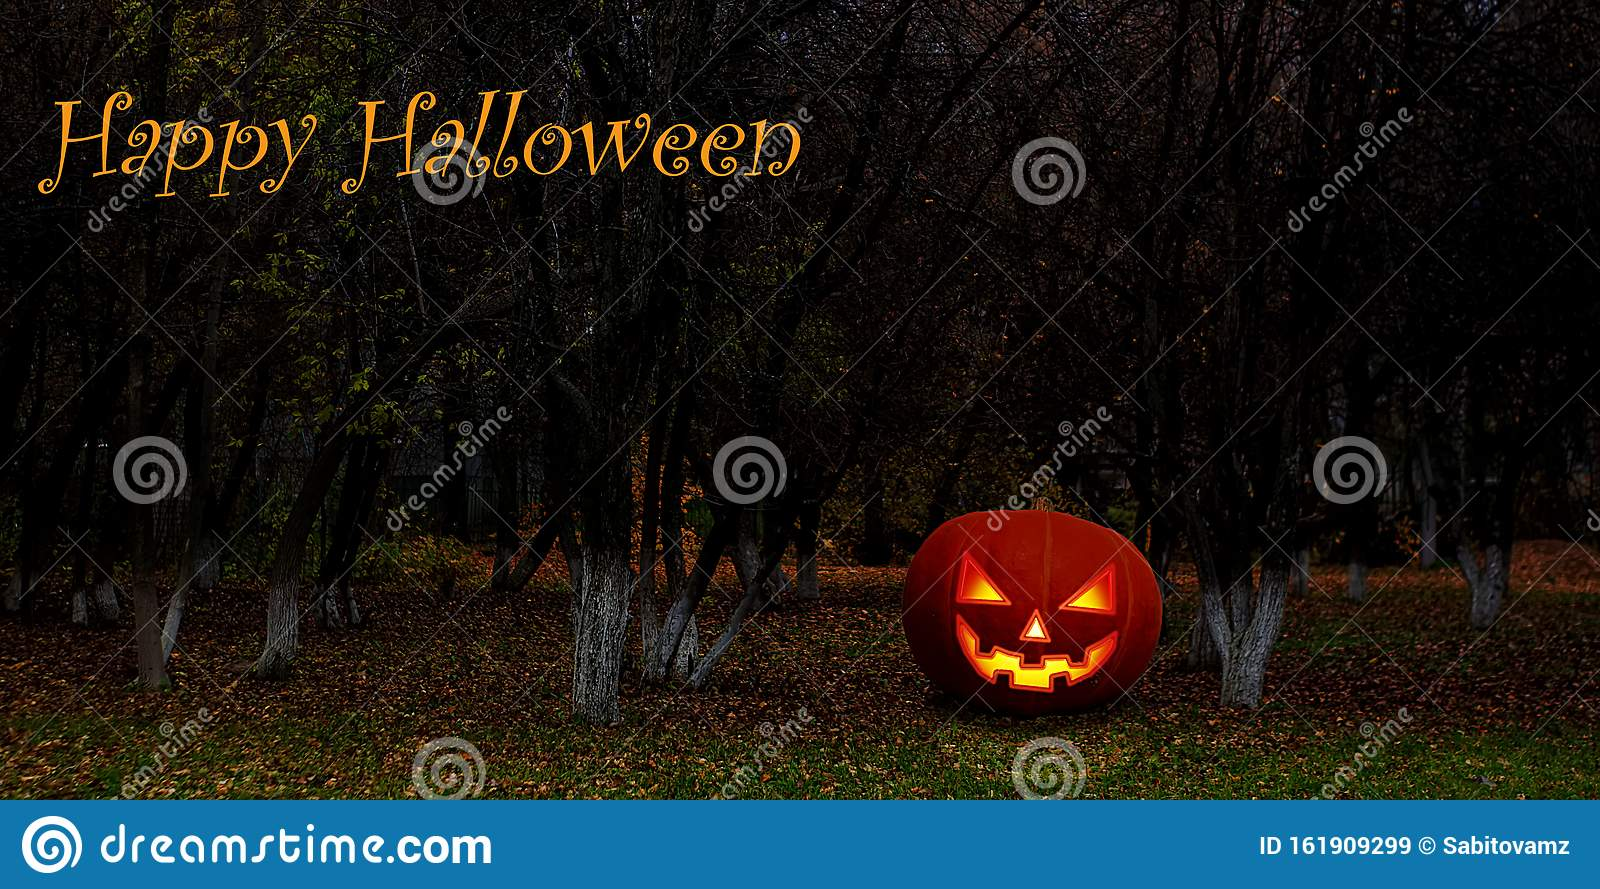 Halloween Background Wallpaper With Pumpkin Jack Lantern The